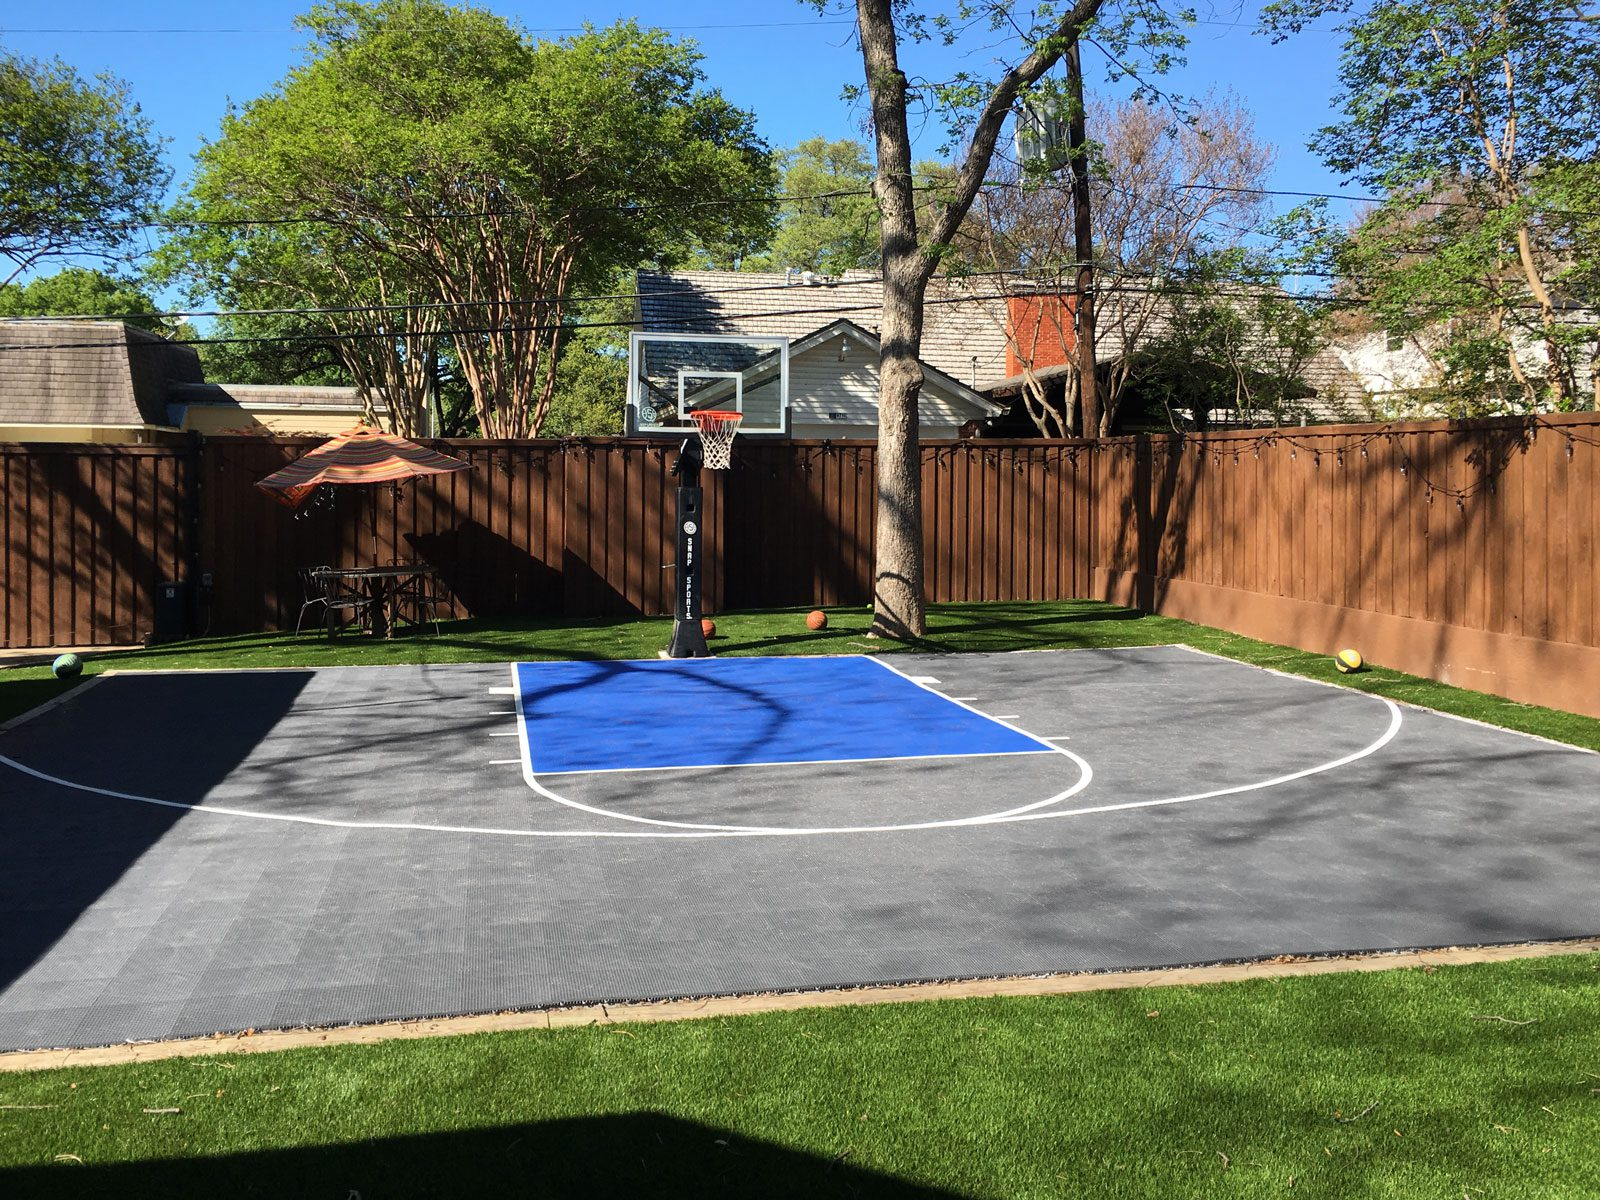 50x30 Gray and blue basketball court